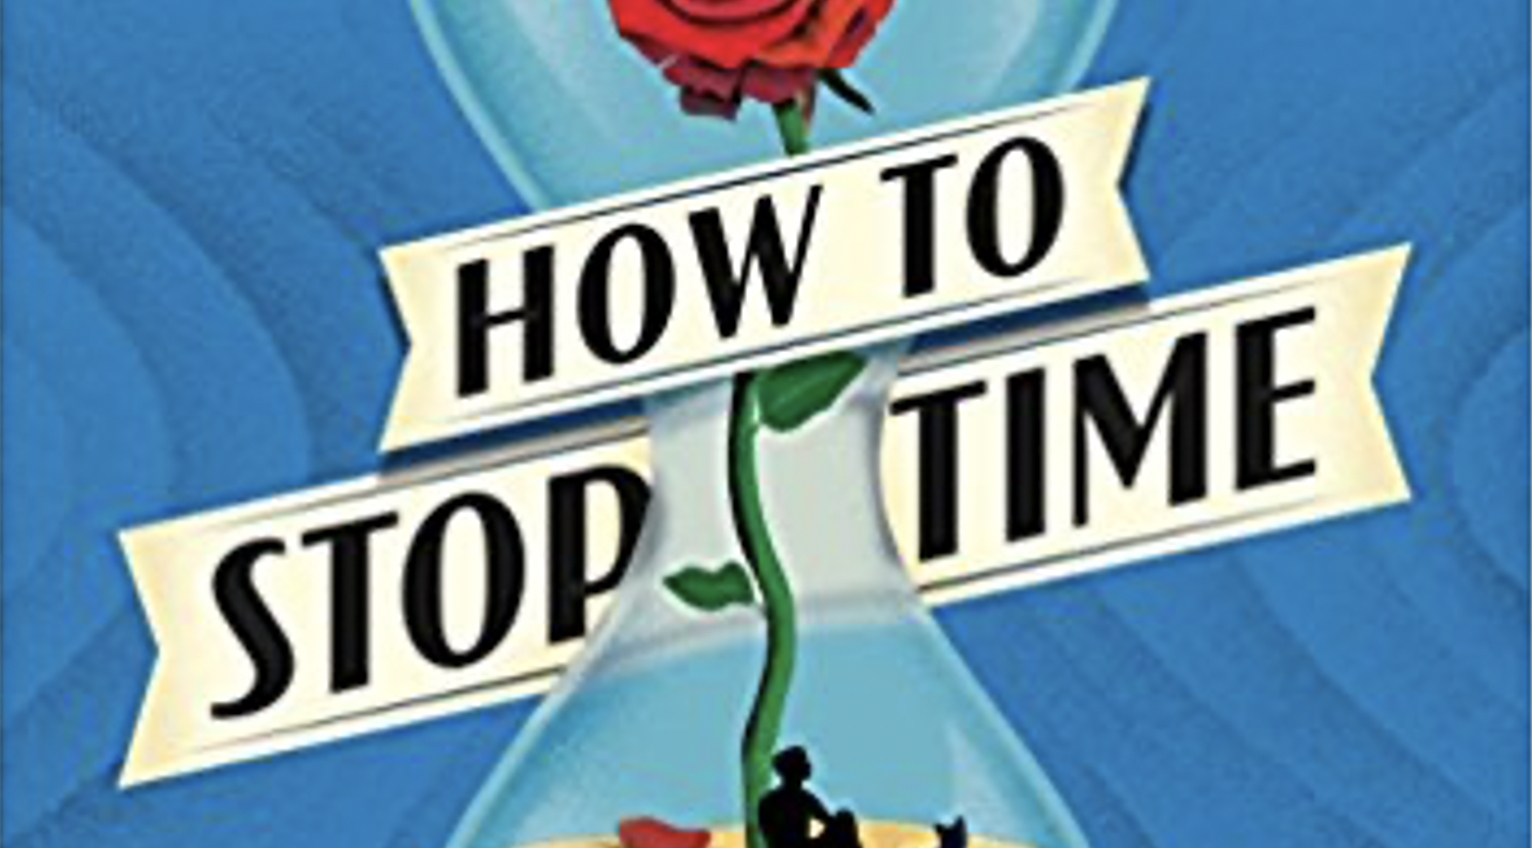 The book cover of How to Stop Time by Matt Haig